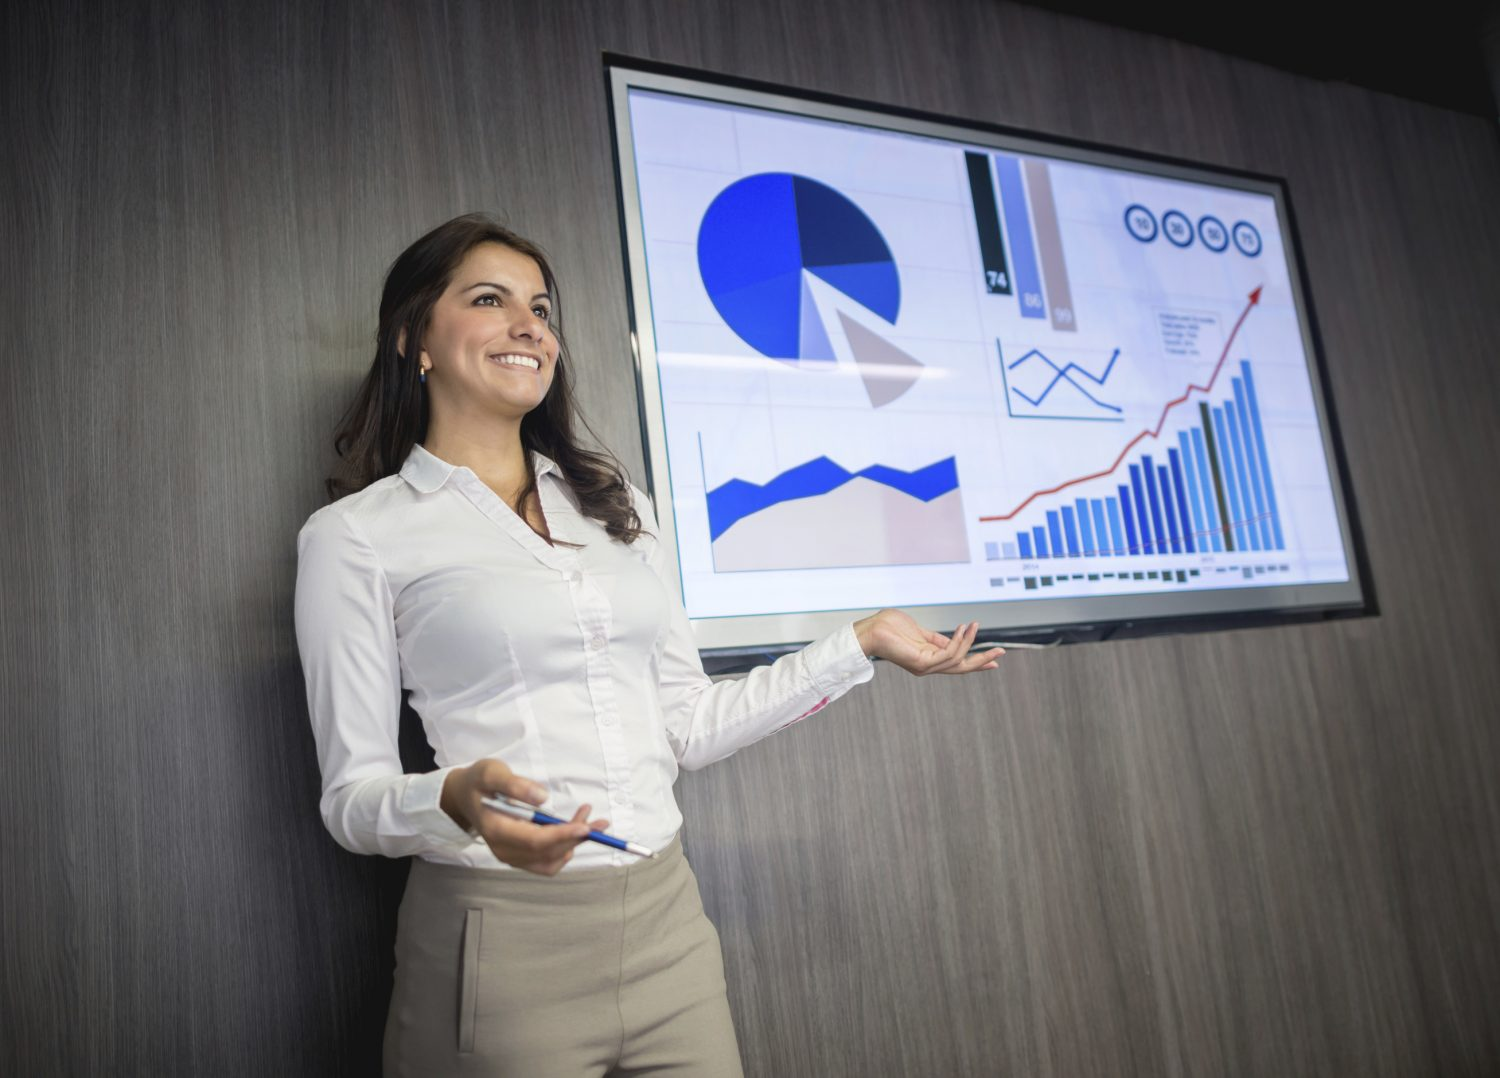 Make a great PowerPoint presentation